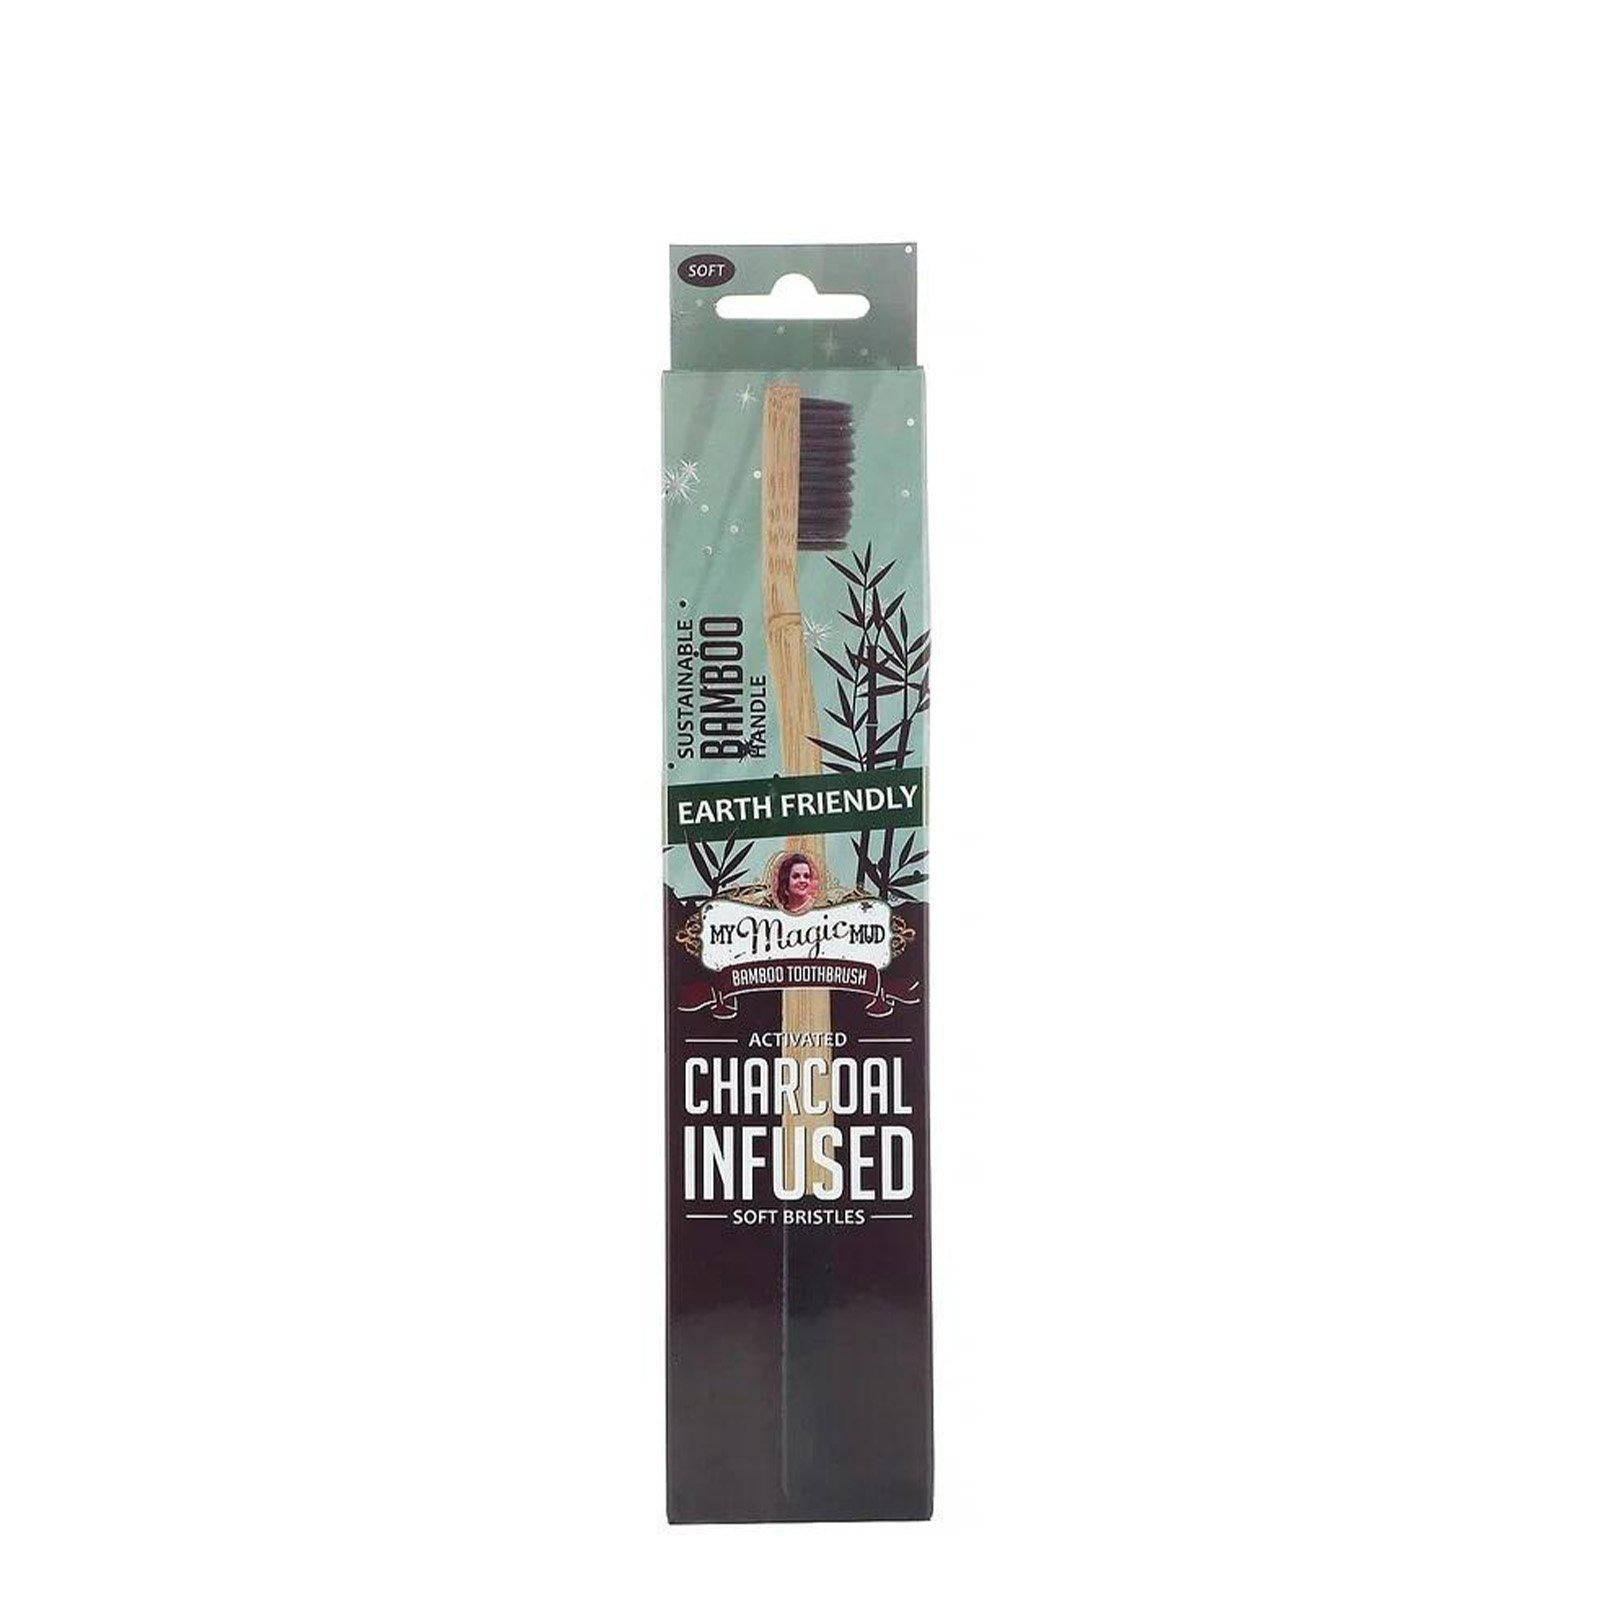 My Magic Mud, Bamboo Toothbrush - Charcoal Infused, 1 piece